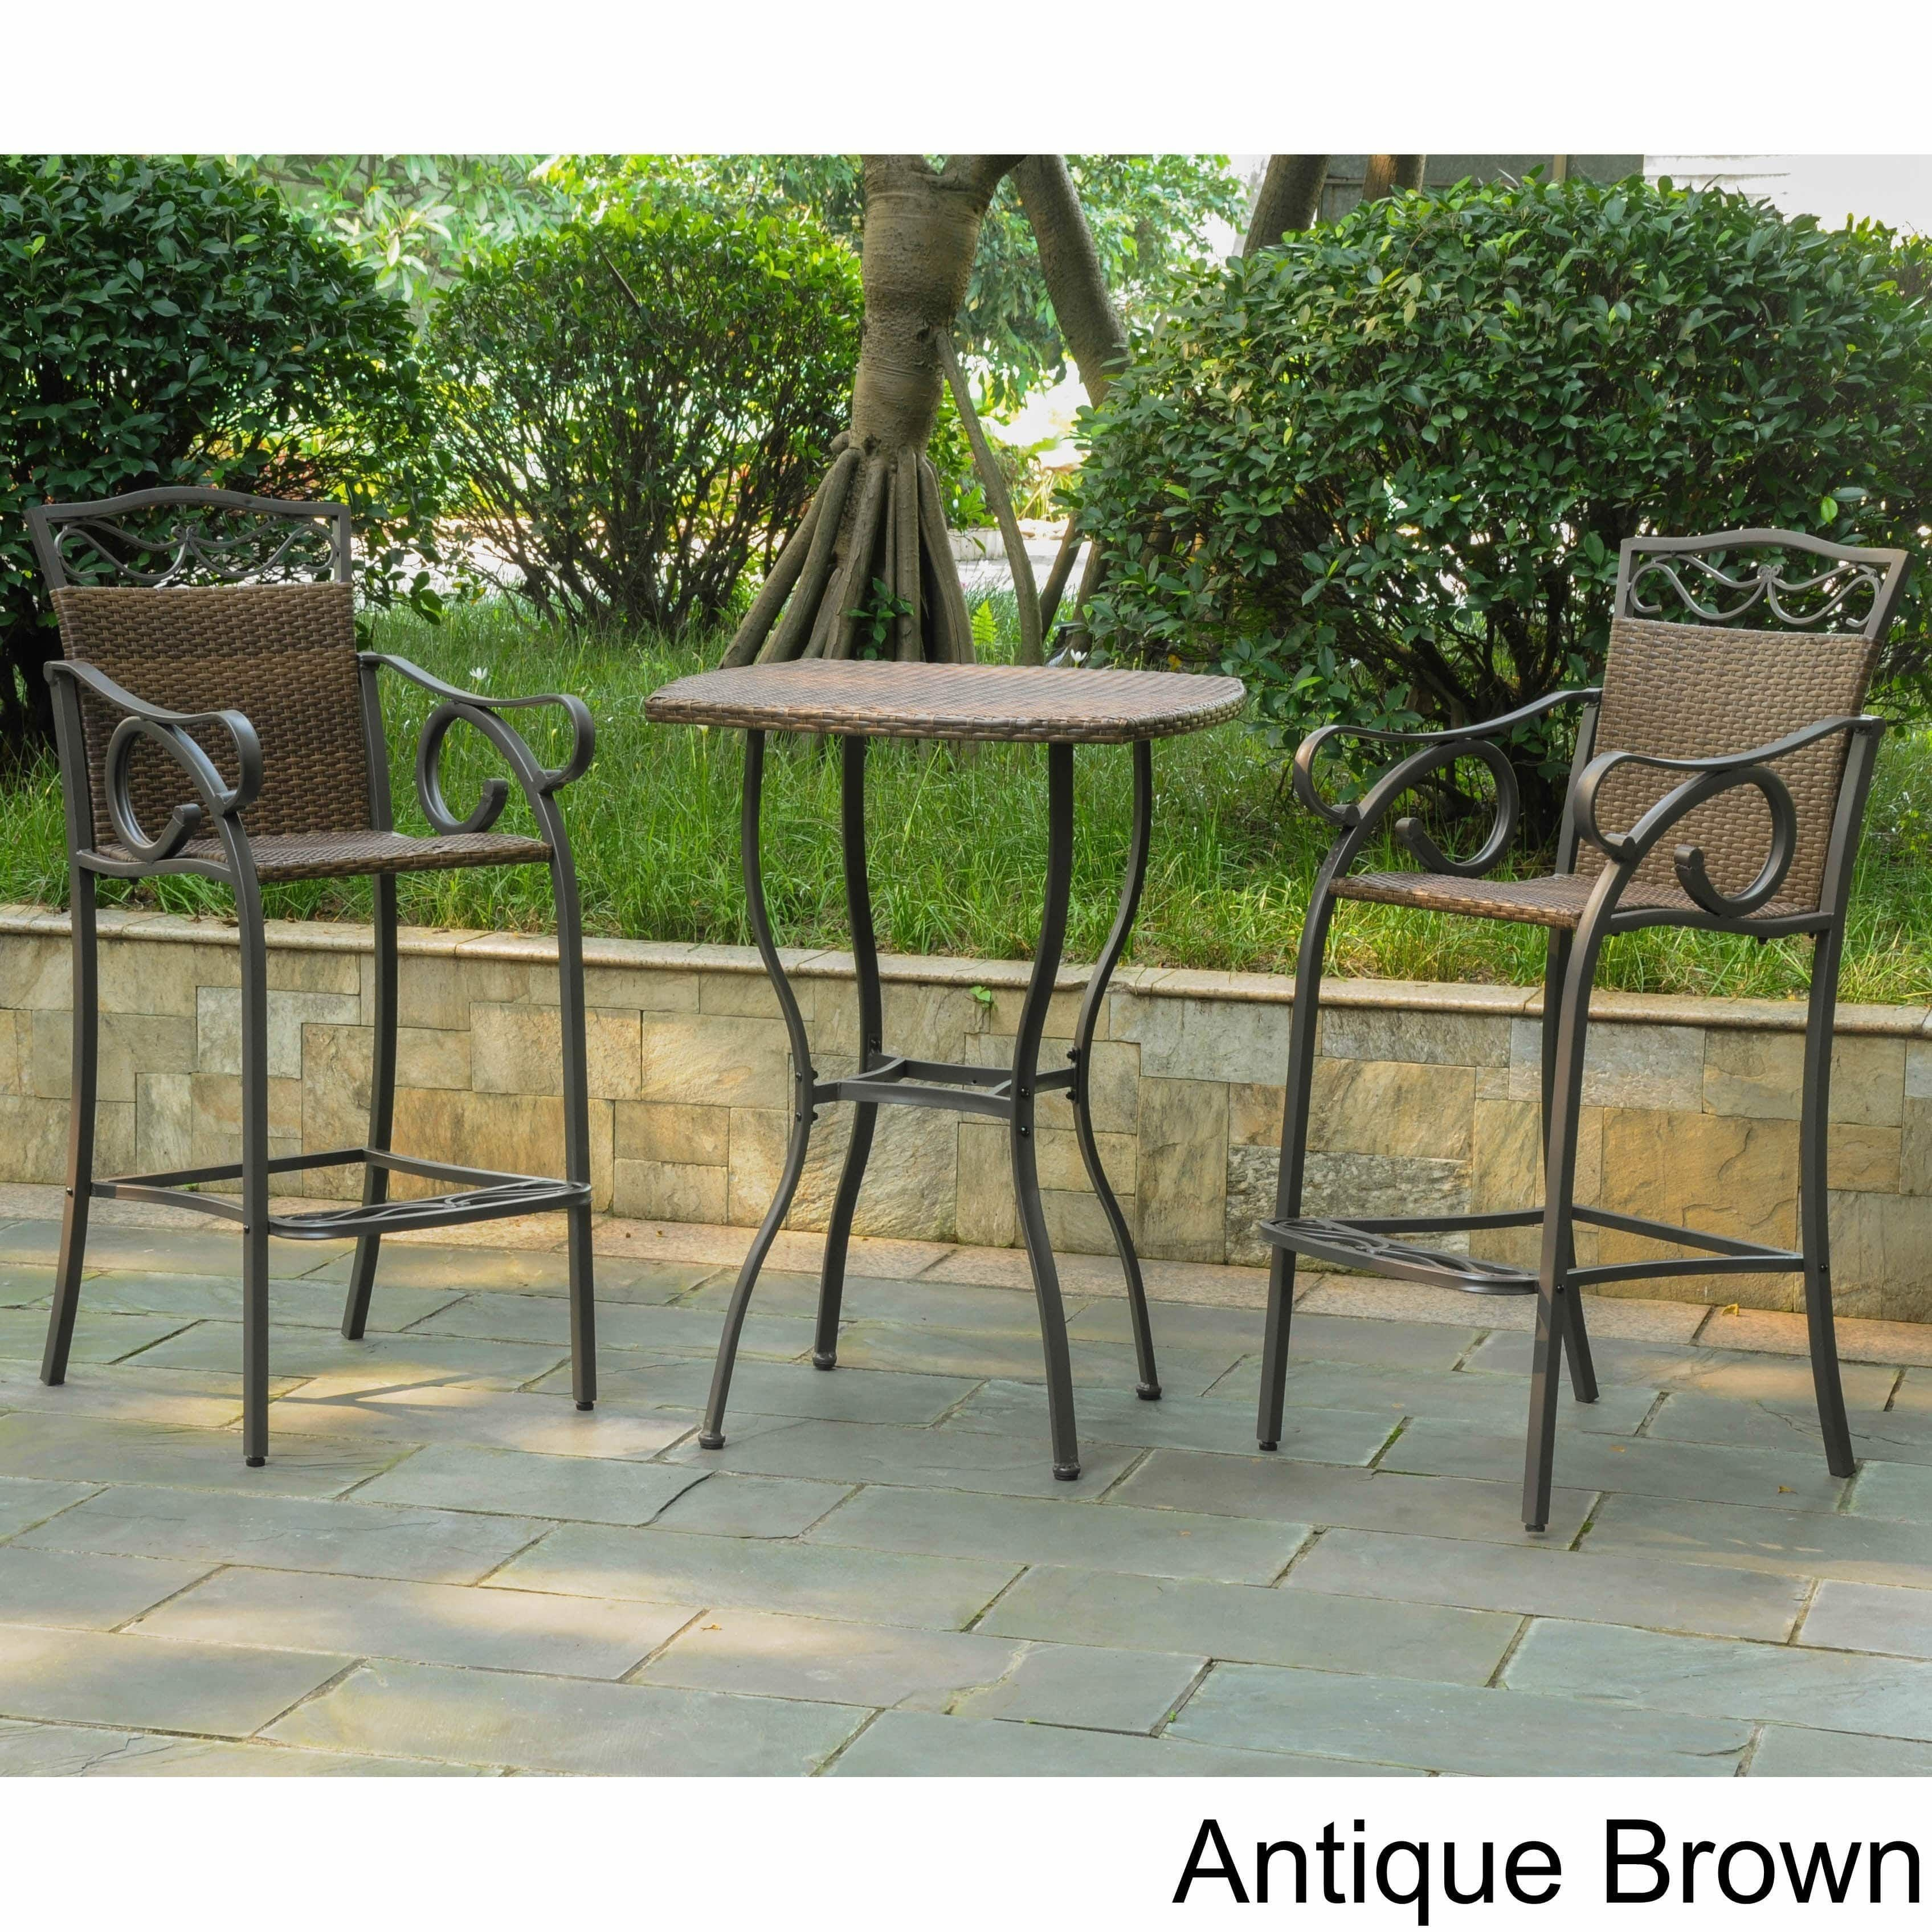 International Caravan Valencia Resin Wicker Steel 3 Piece Bar Height Bistro Set